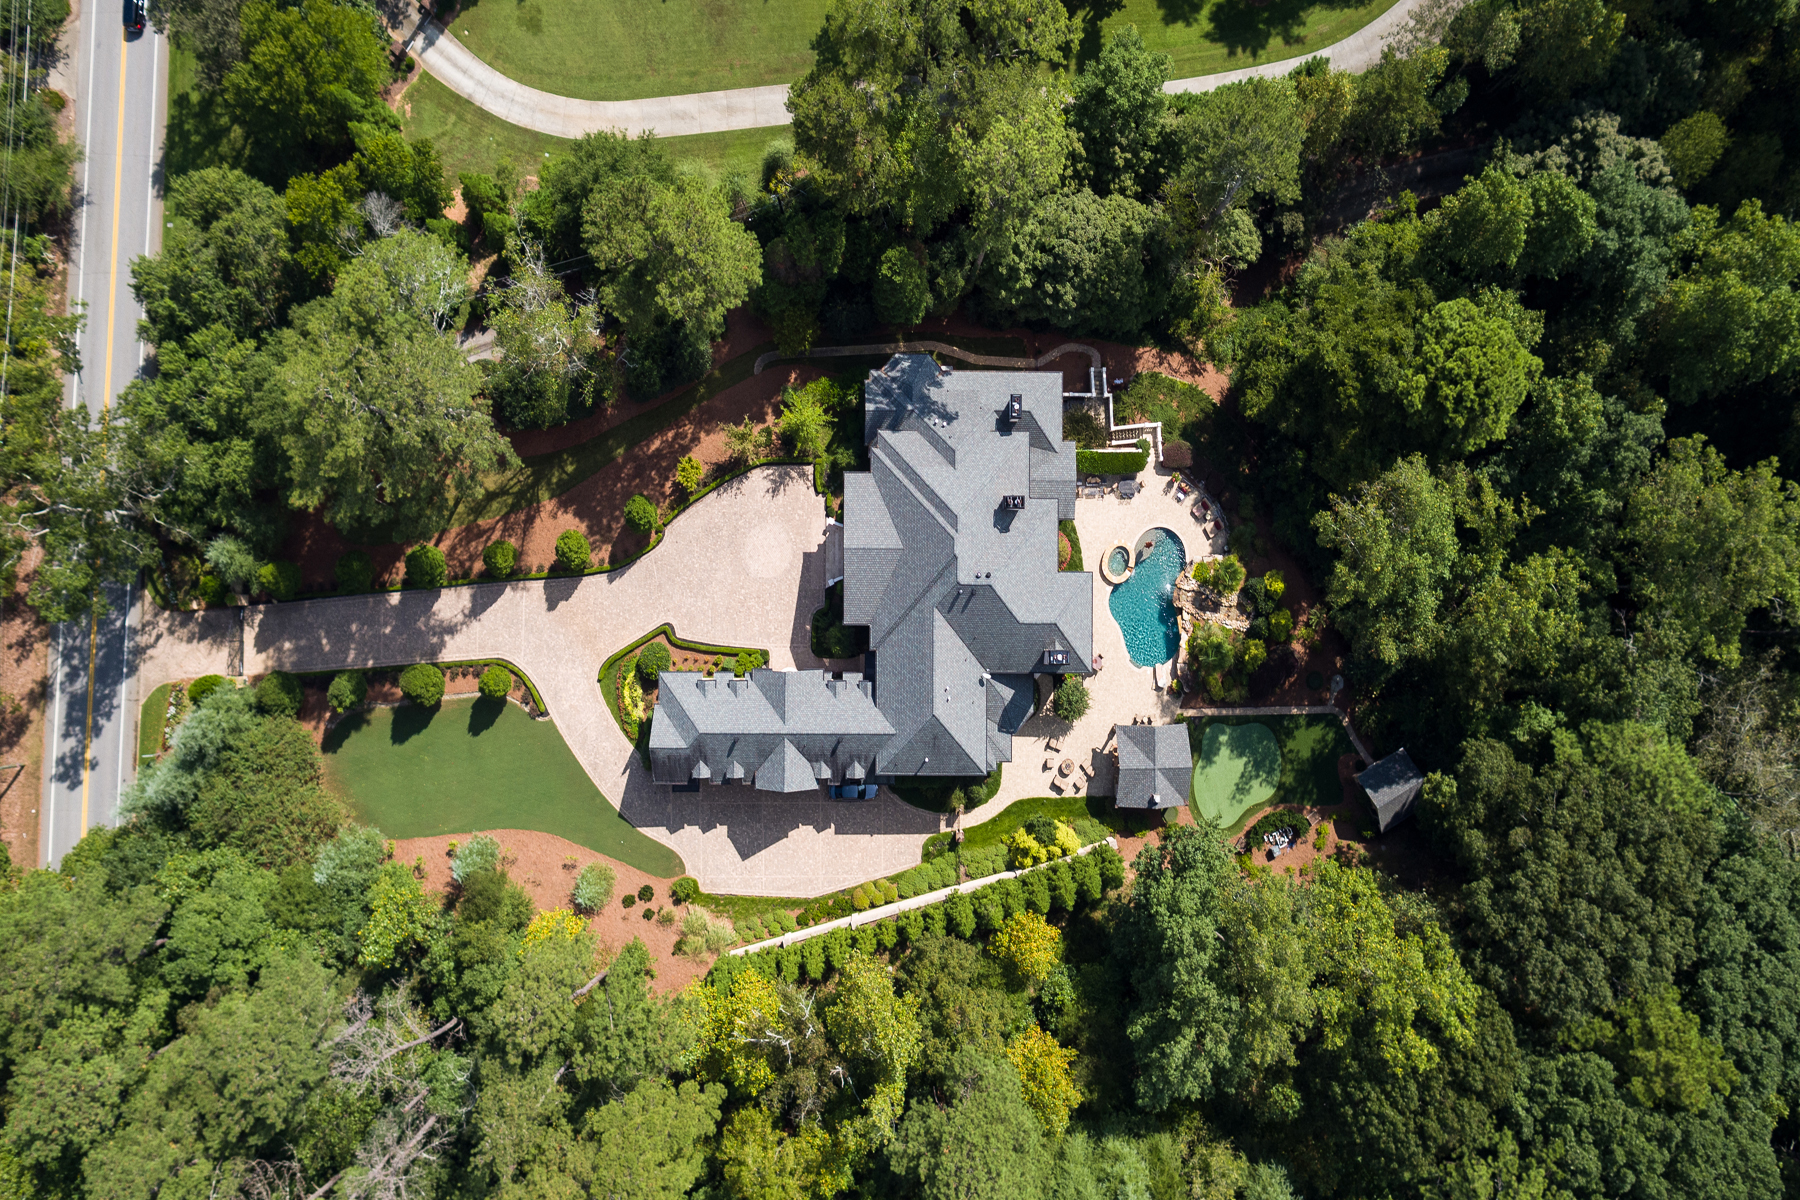 Single Family Home for Sale at Luxurious, Sophisticated, Elegant Gated Estate On 2.5+/- Acres 4870 Northside Drive Atlanta, Georgia 30327 United States